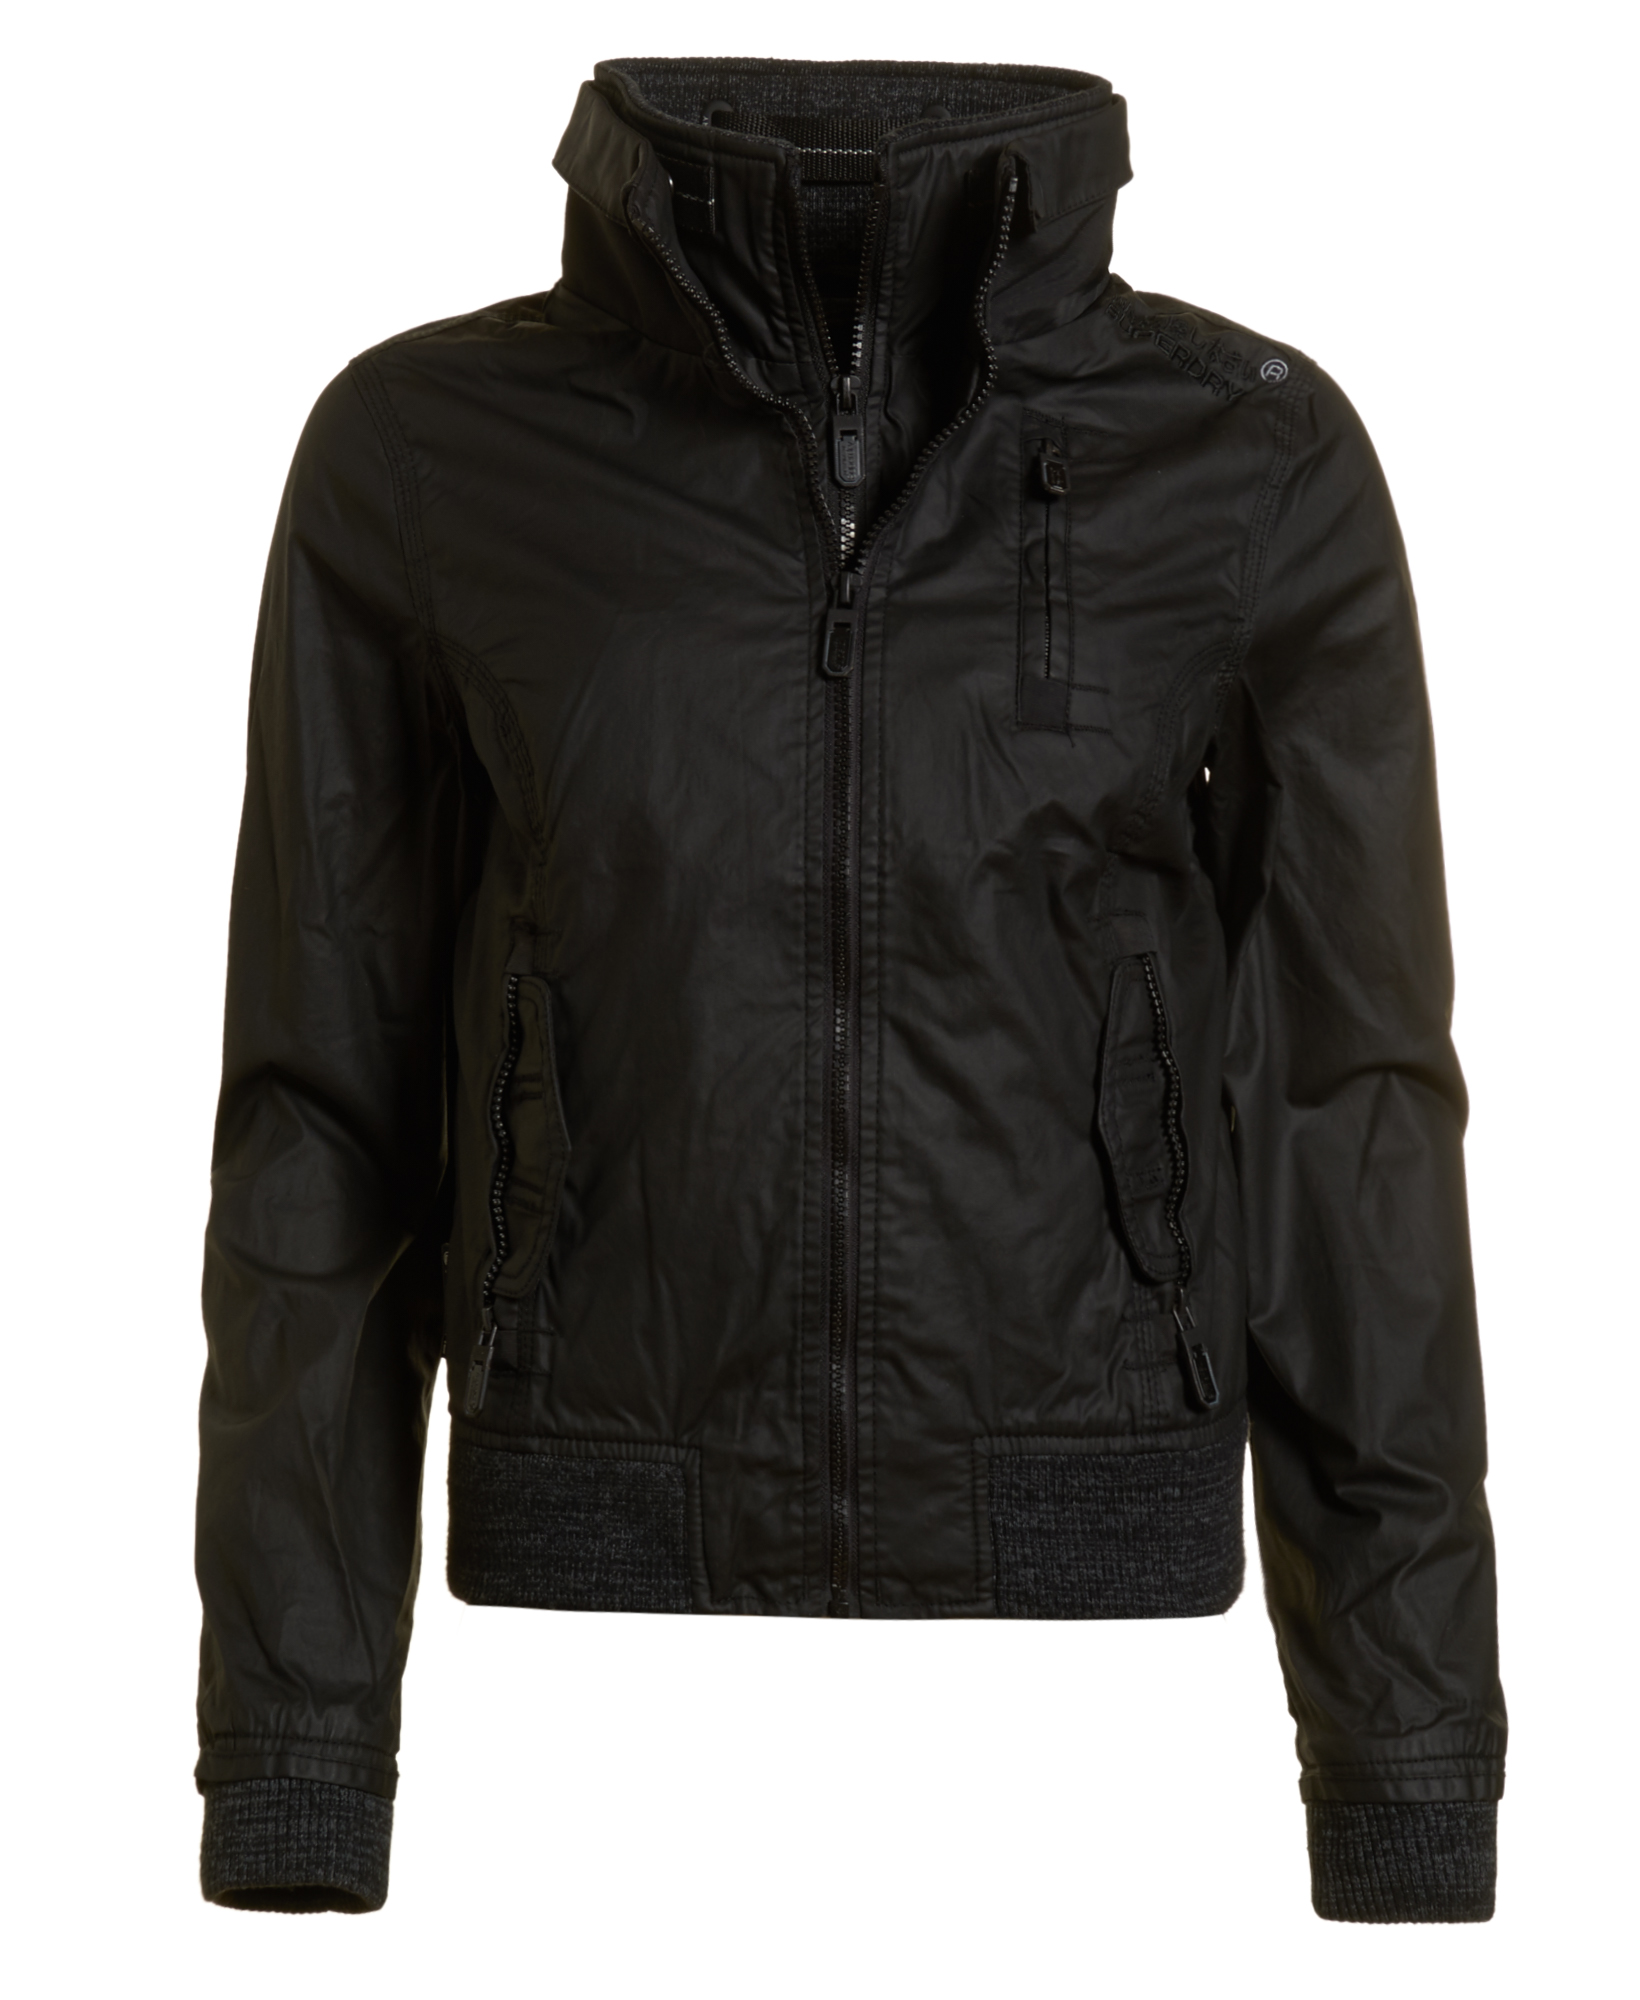 neue damen superdry jacke moody bomber lite schwarz ebay. Black Bedroom Furniture Sets. Home Design Ideas